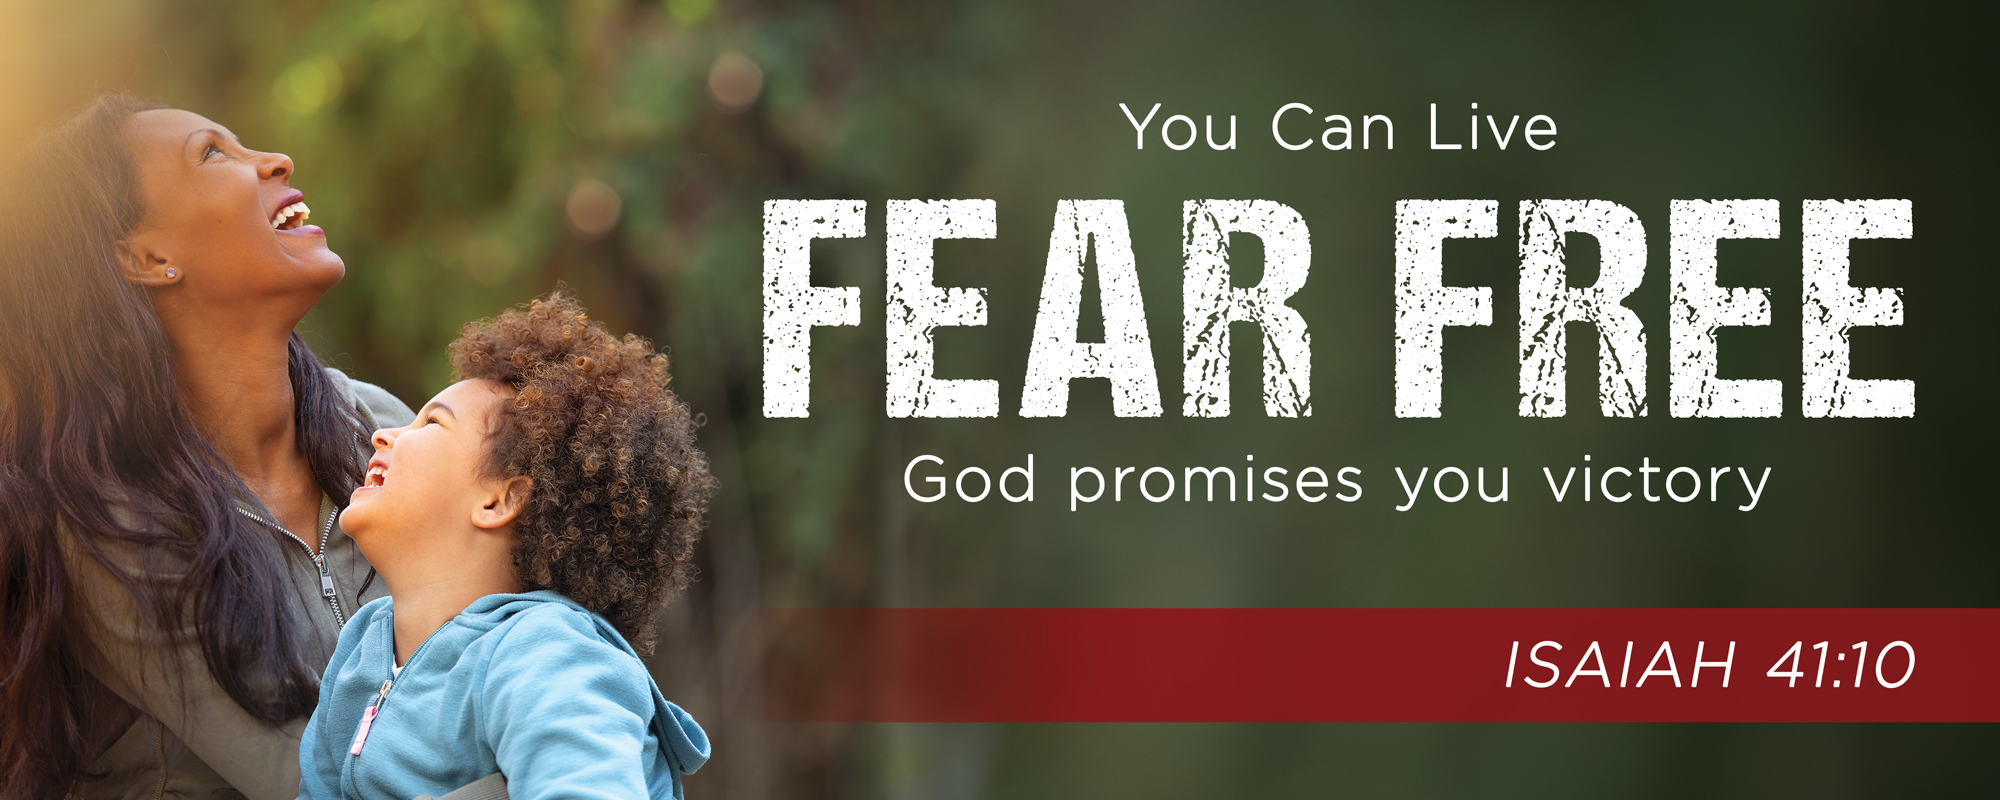 You Can Live Fear Free God Promises you Victory Isaiah 41:10